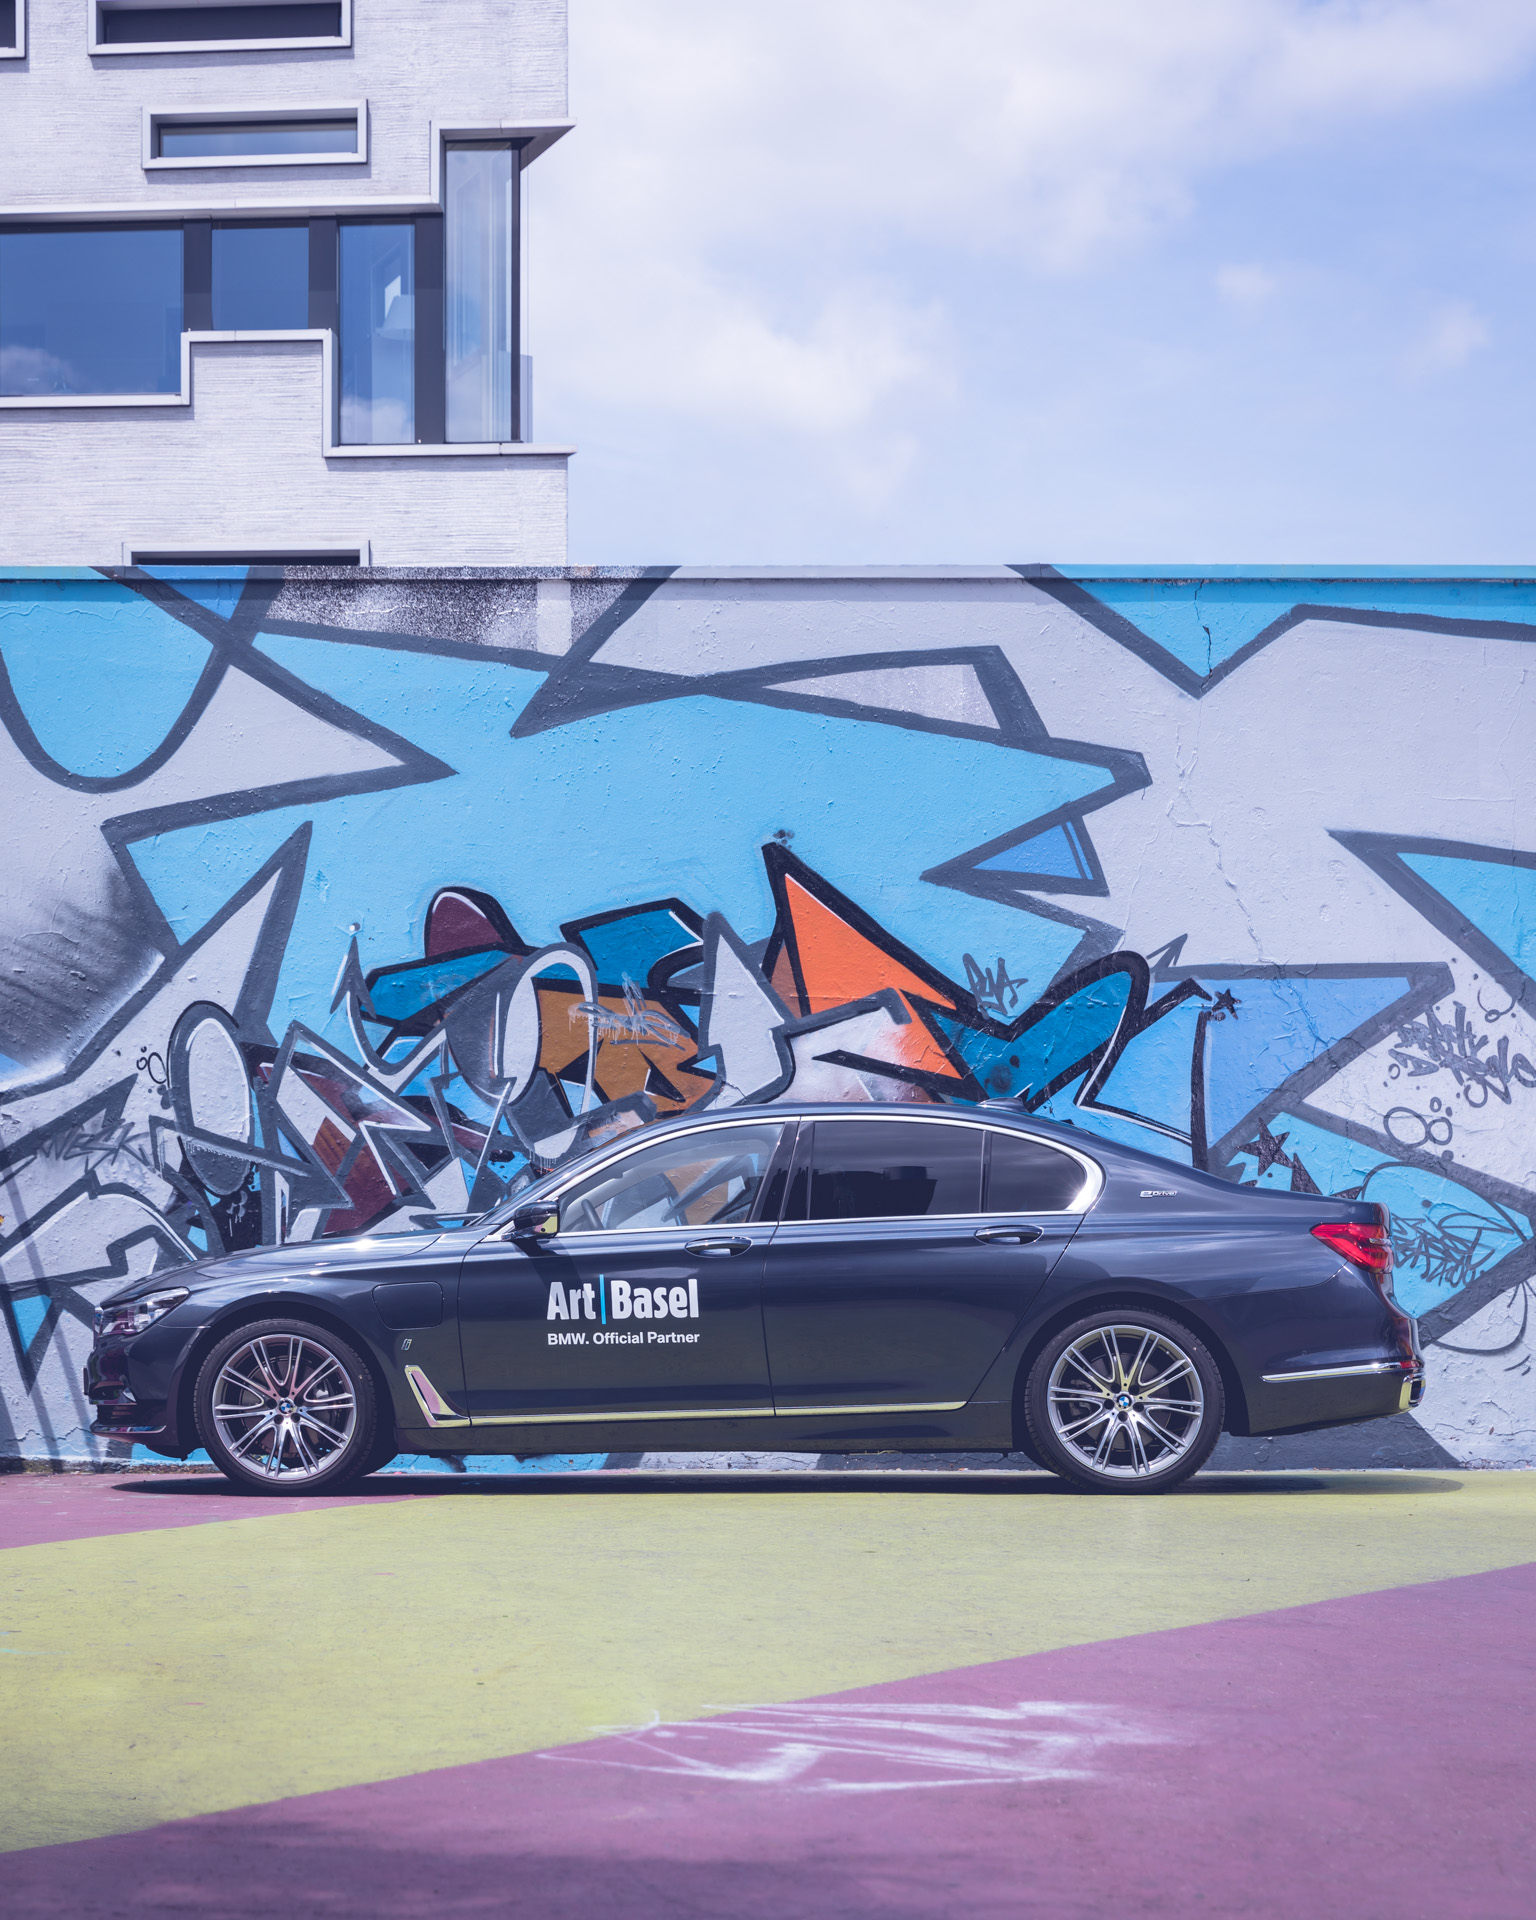 Art Basel BMW Culture 7er 7 series 2018 vor Graffiti in Basel Urban seitlich